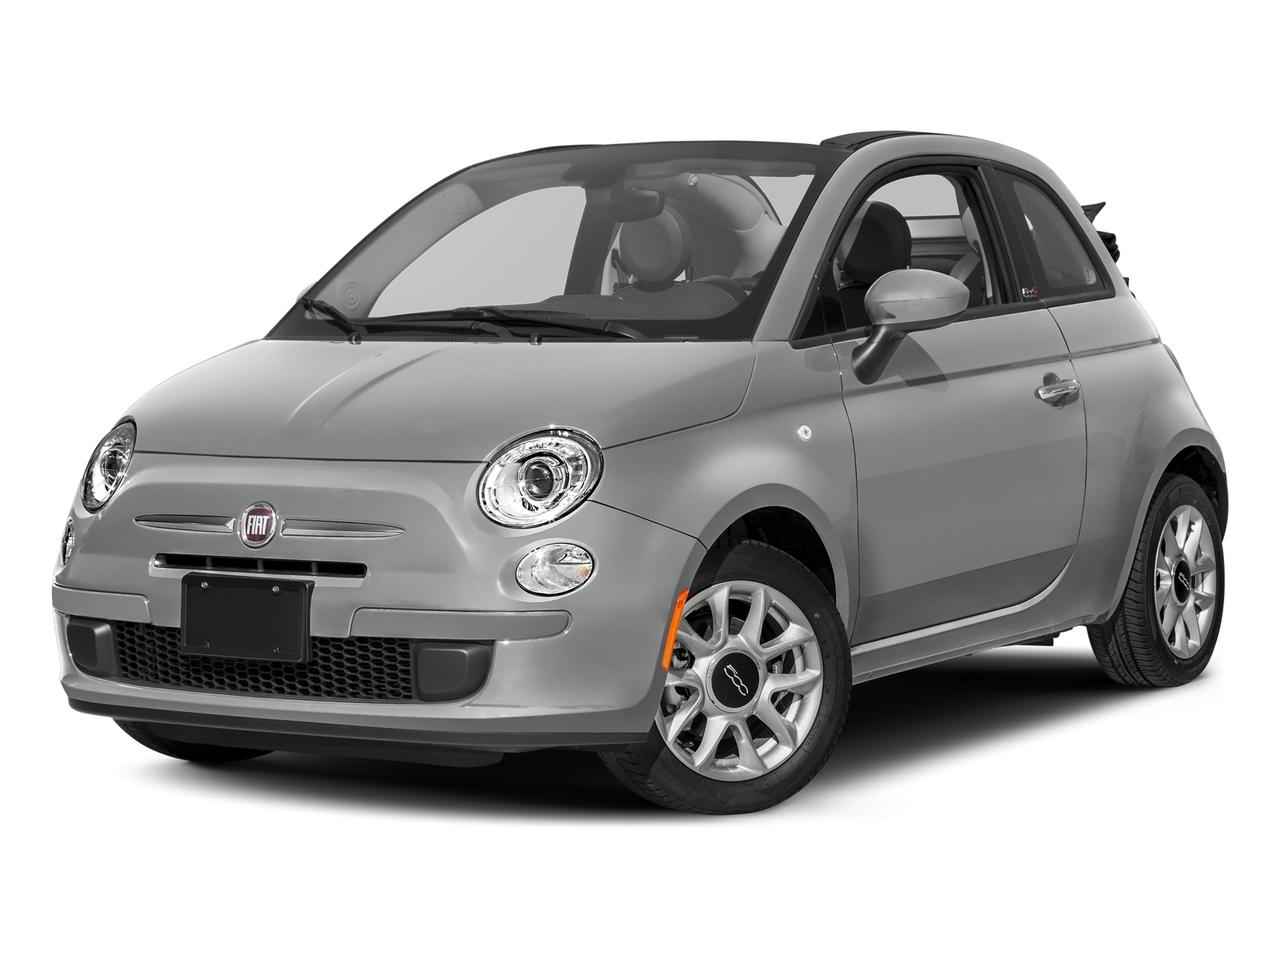 2017 FIAT 500c Vehicle Photo in Melbourne, FL 32901